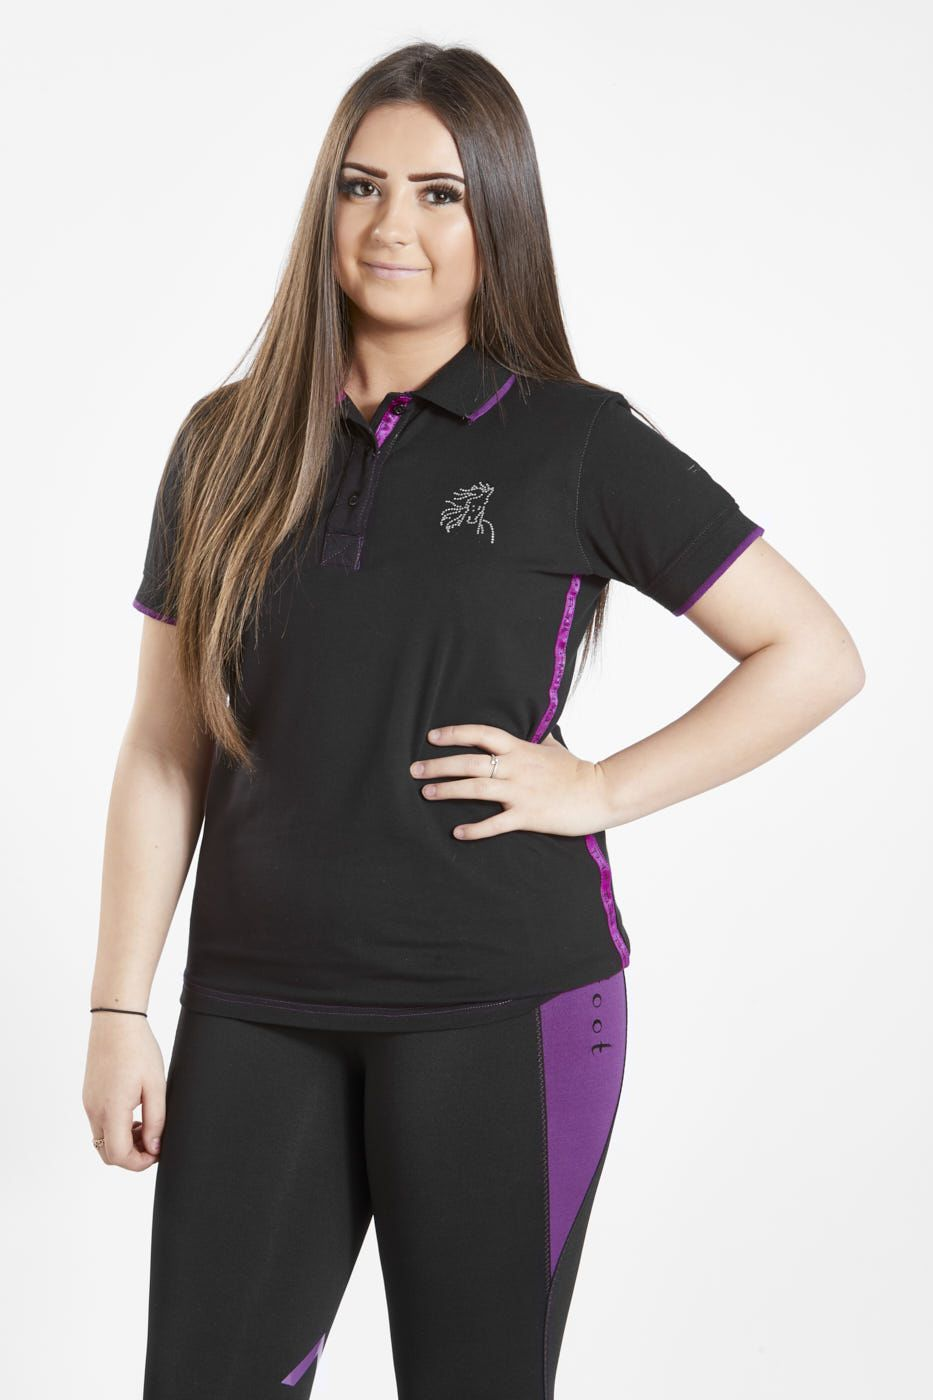 Firefoot Childs Crofton Black Sparkle Polo Top